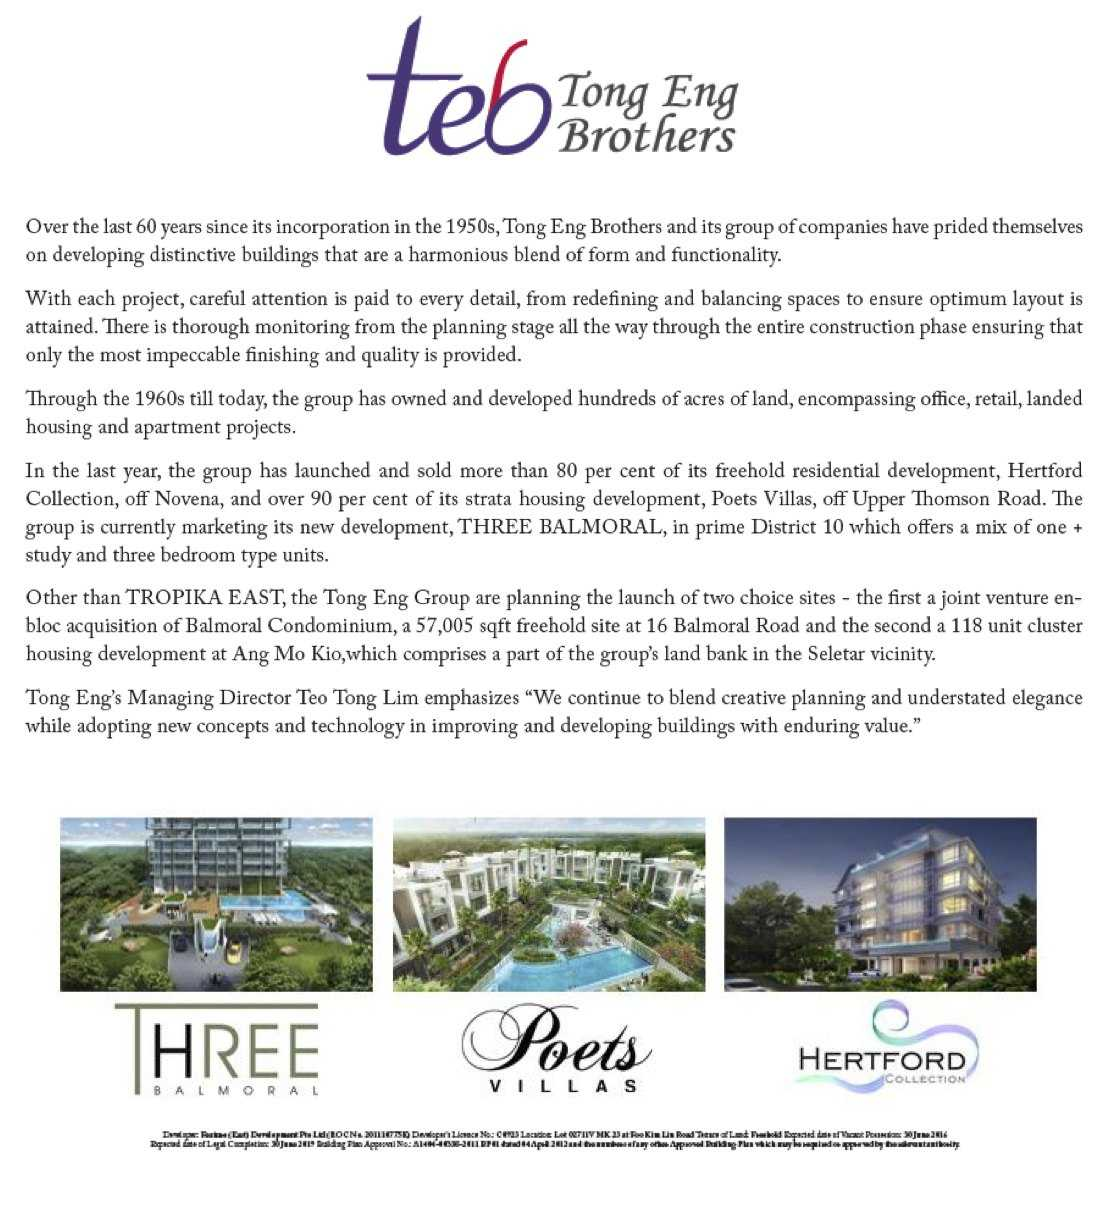 tong-eng-brother-developer-profile